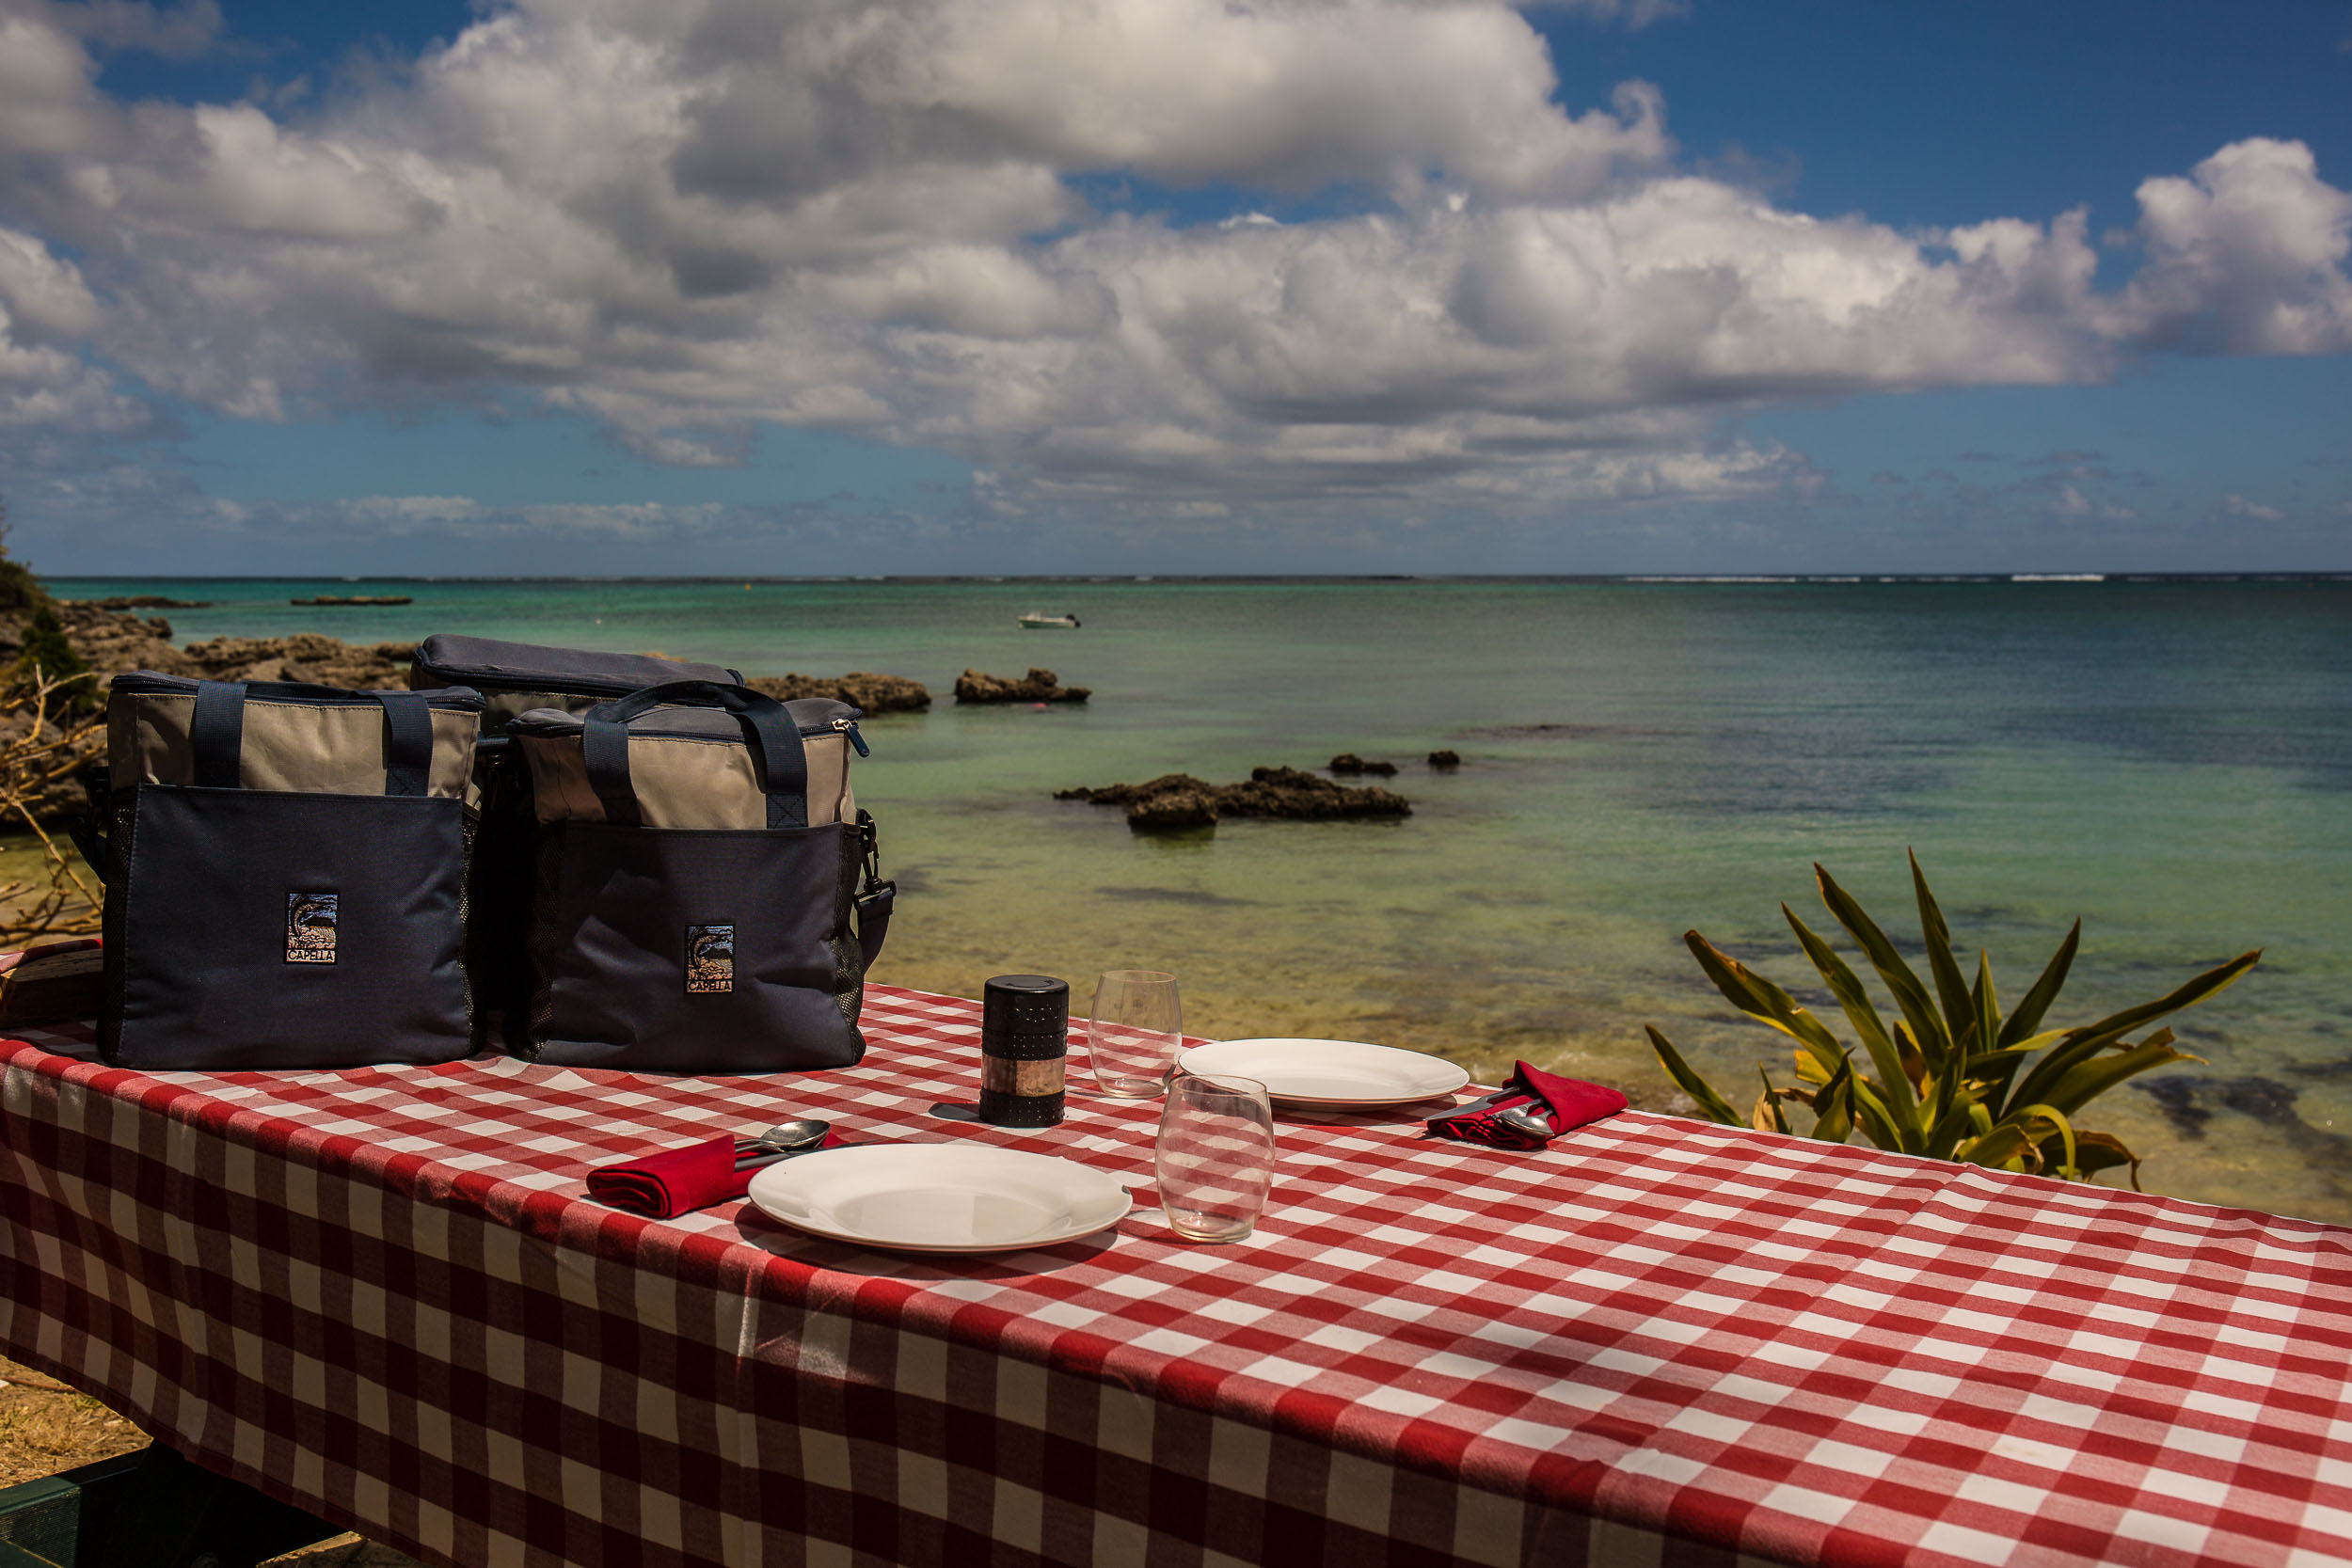 Picnic Lunch with all the trappings, Capella Lodge, Lord Howe Island